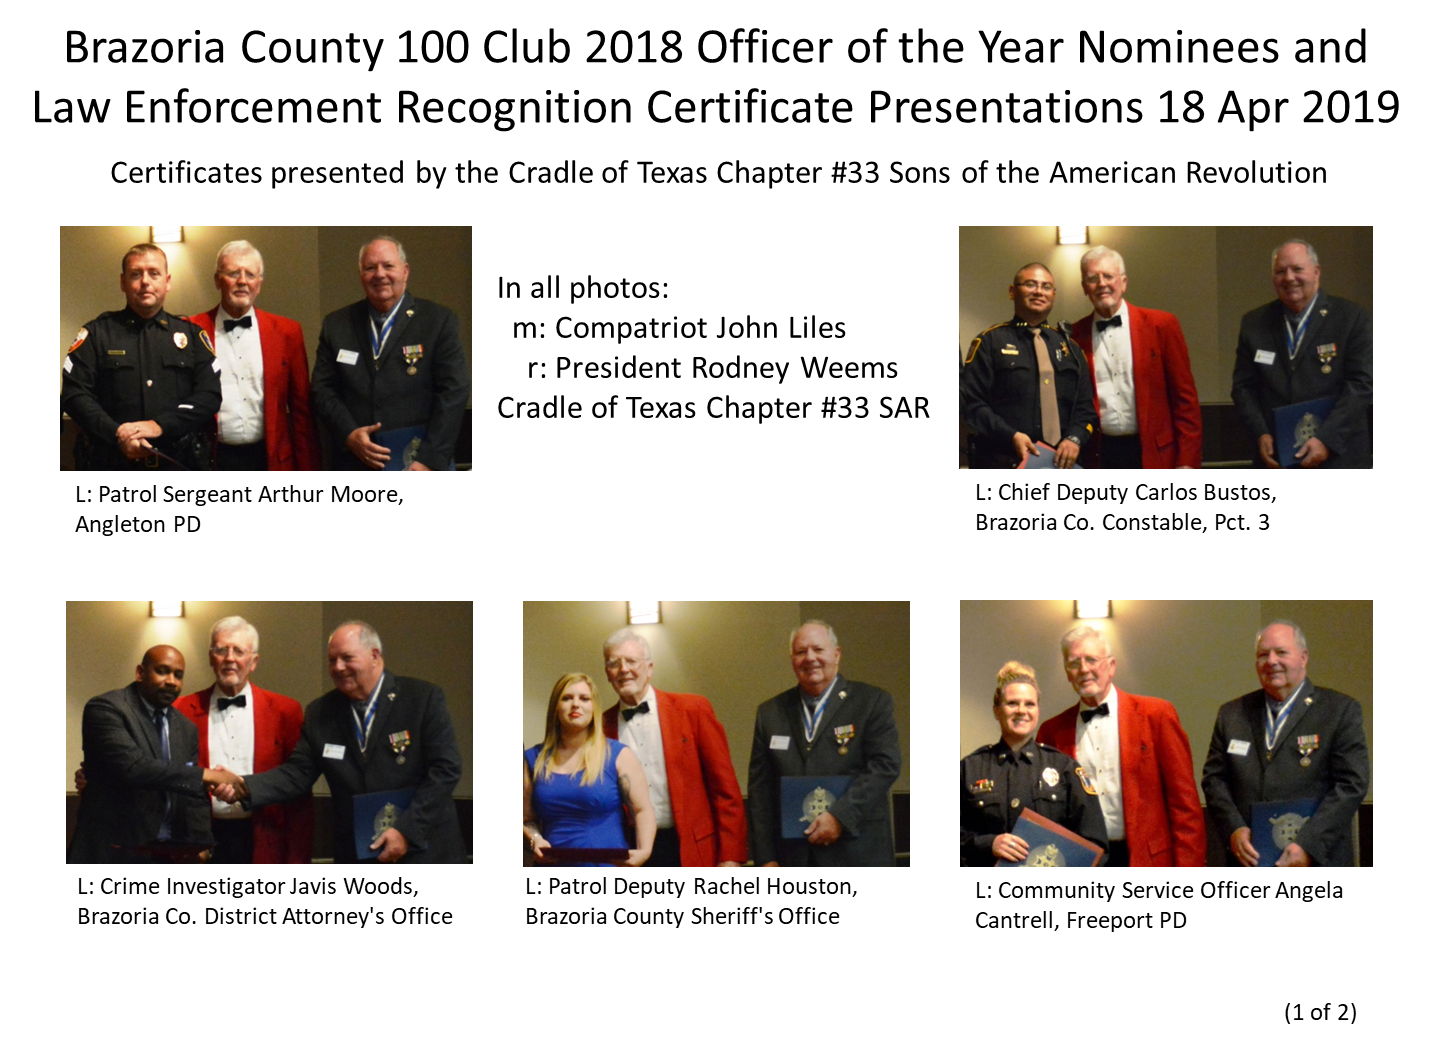 Brazoria County 100 Club 2018 Officer of the Year Nominees (1 of 2)